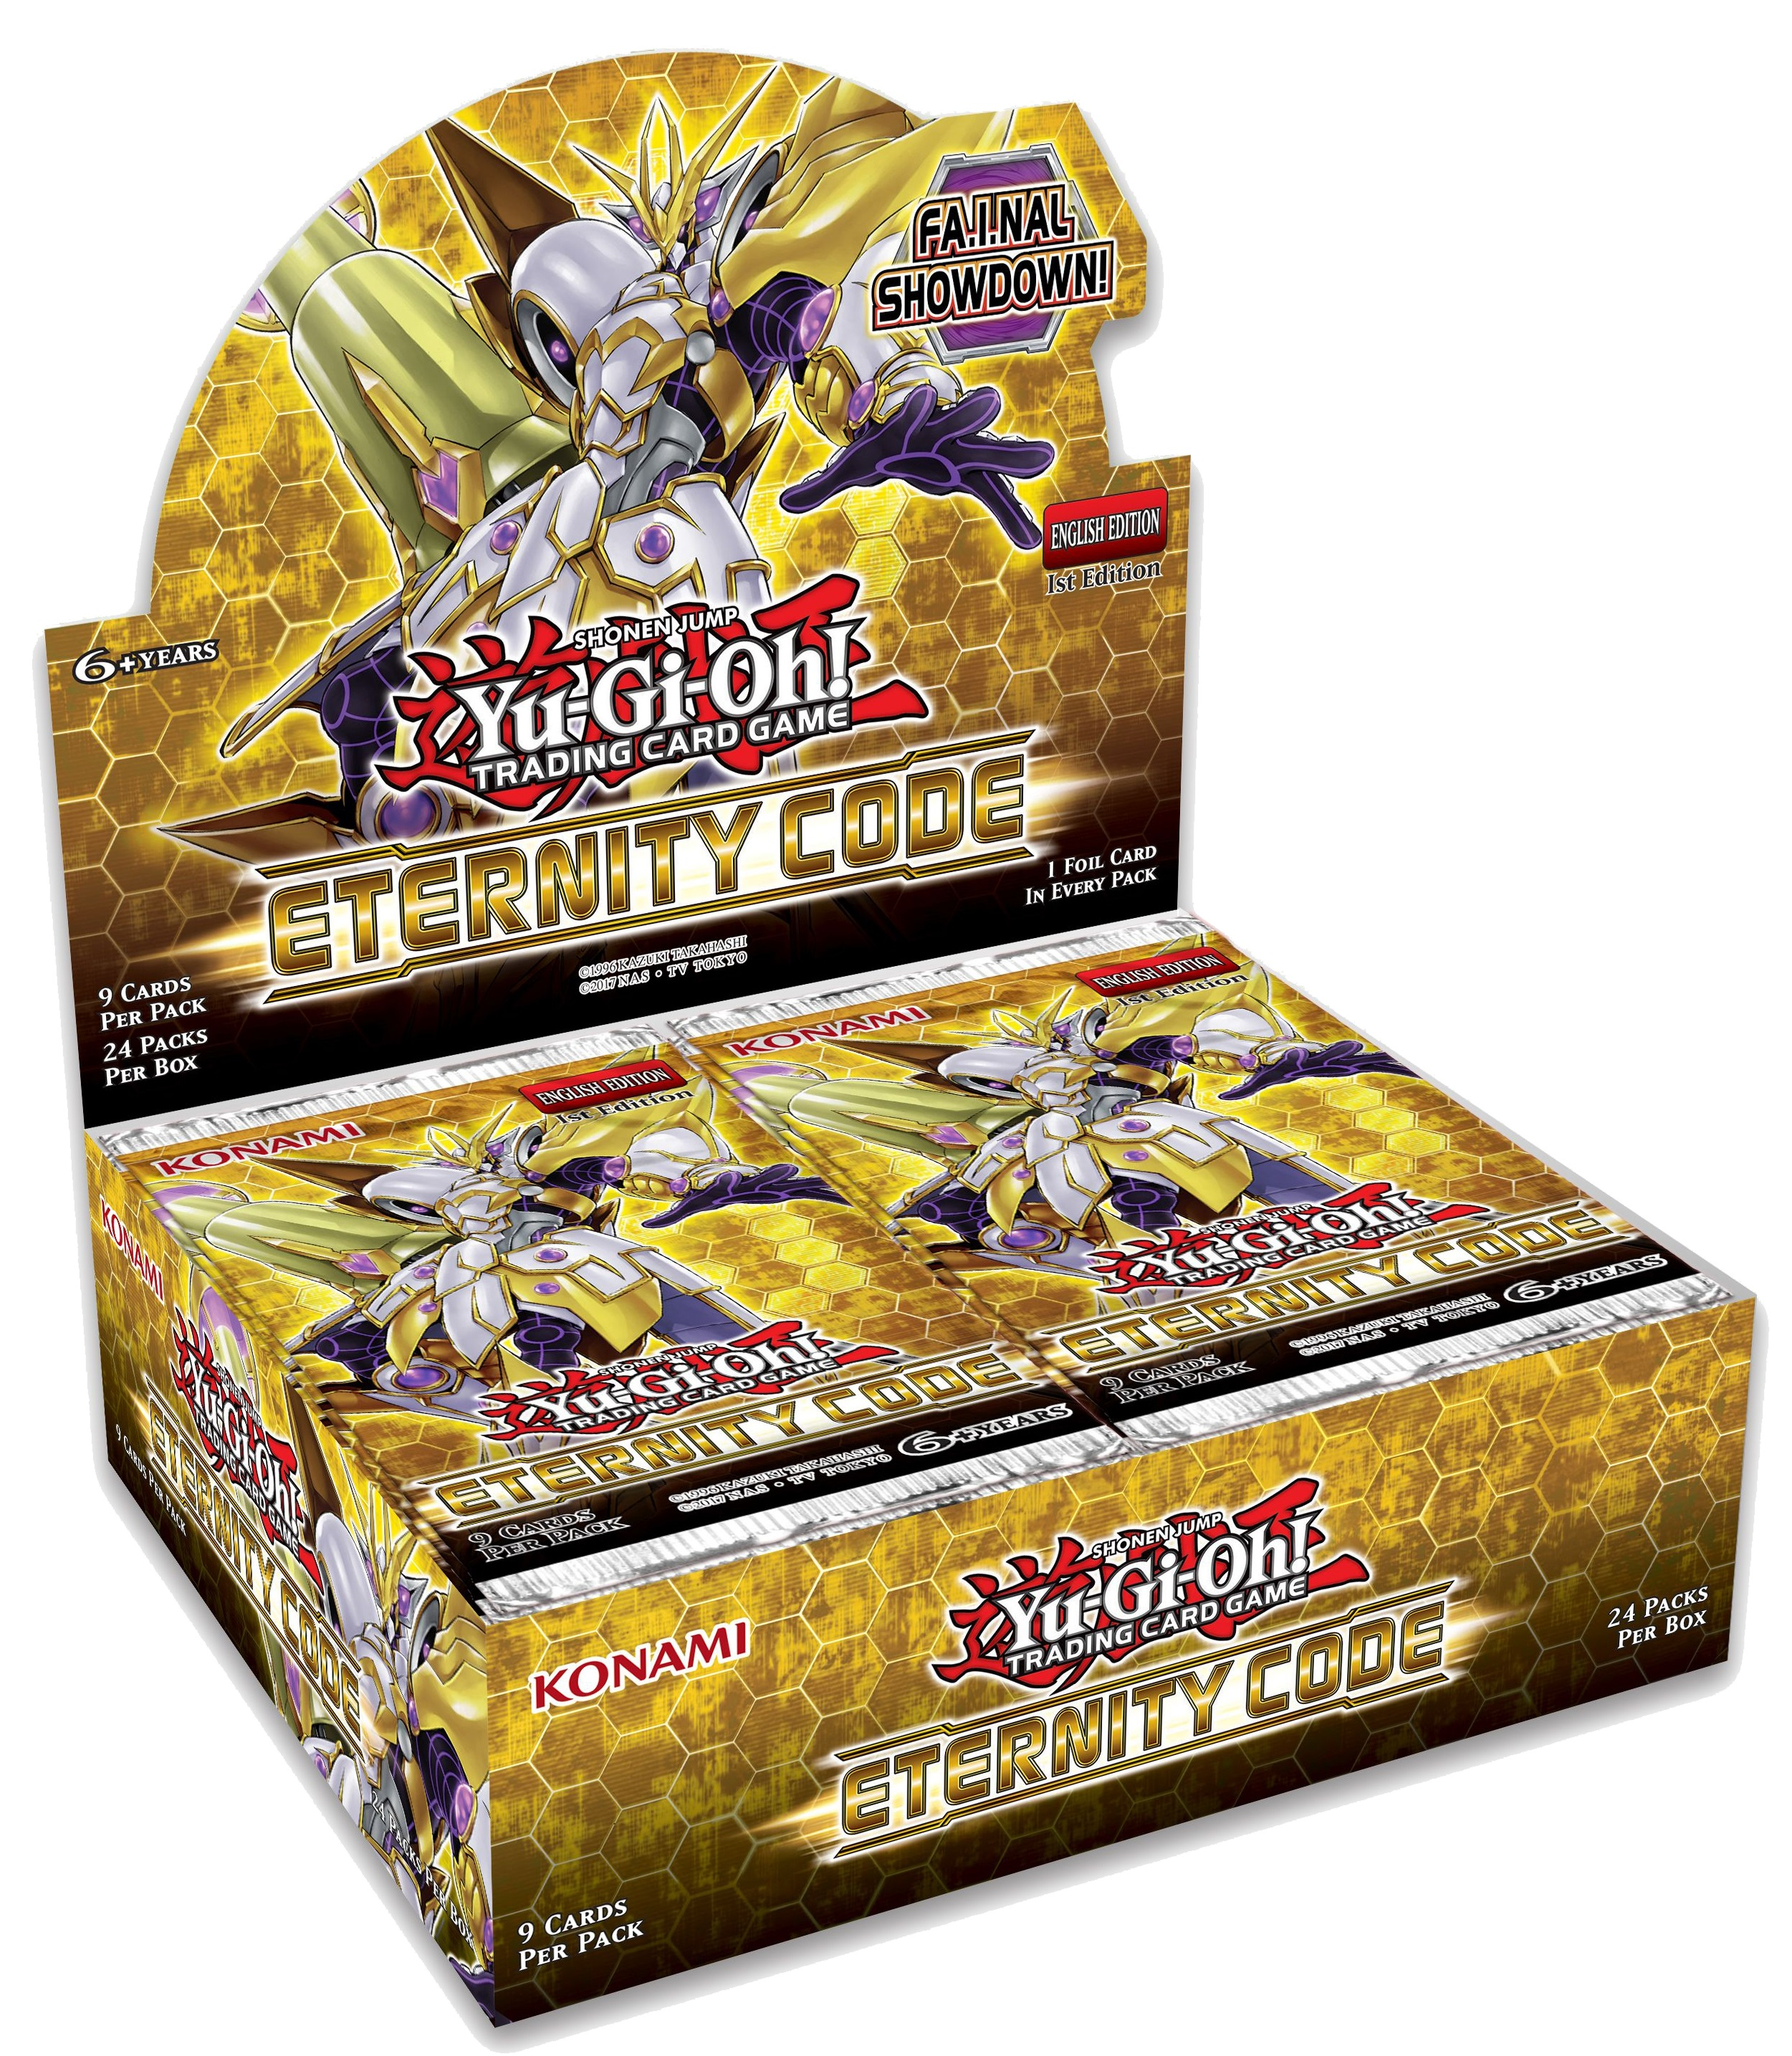 Yu-Gi-Oh Eternity Code 1st Edition Booster Box